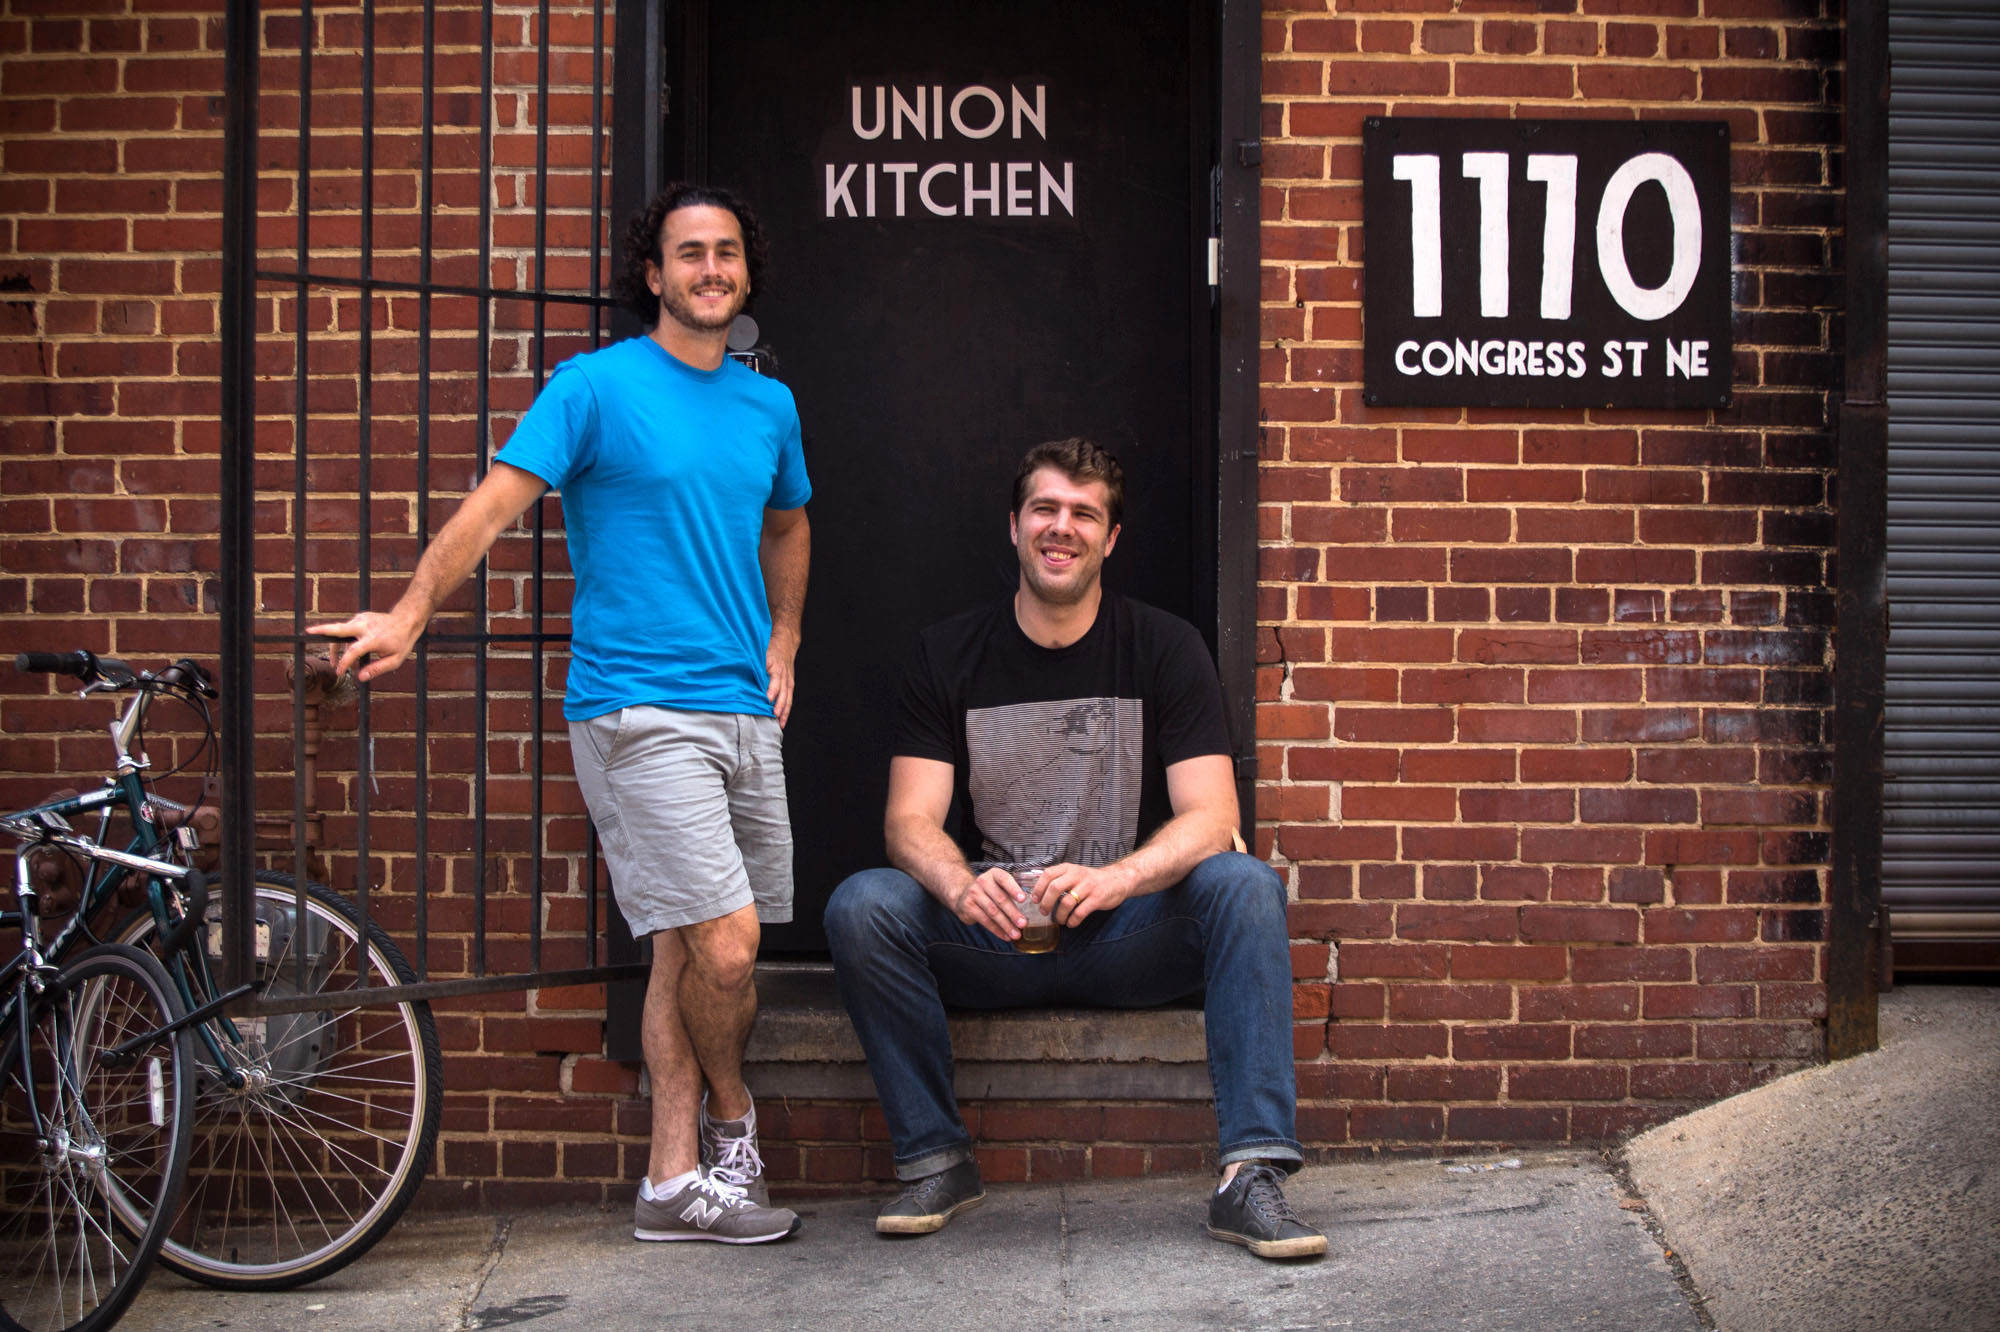 Jonas Singer (left) and Cullen Gilchrist co-founded Union Kitchen, a food incubator in Washington, D.C. Photo: Meredith Rizzo/NPR